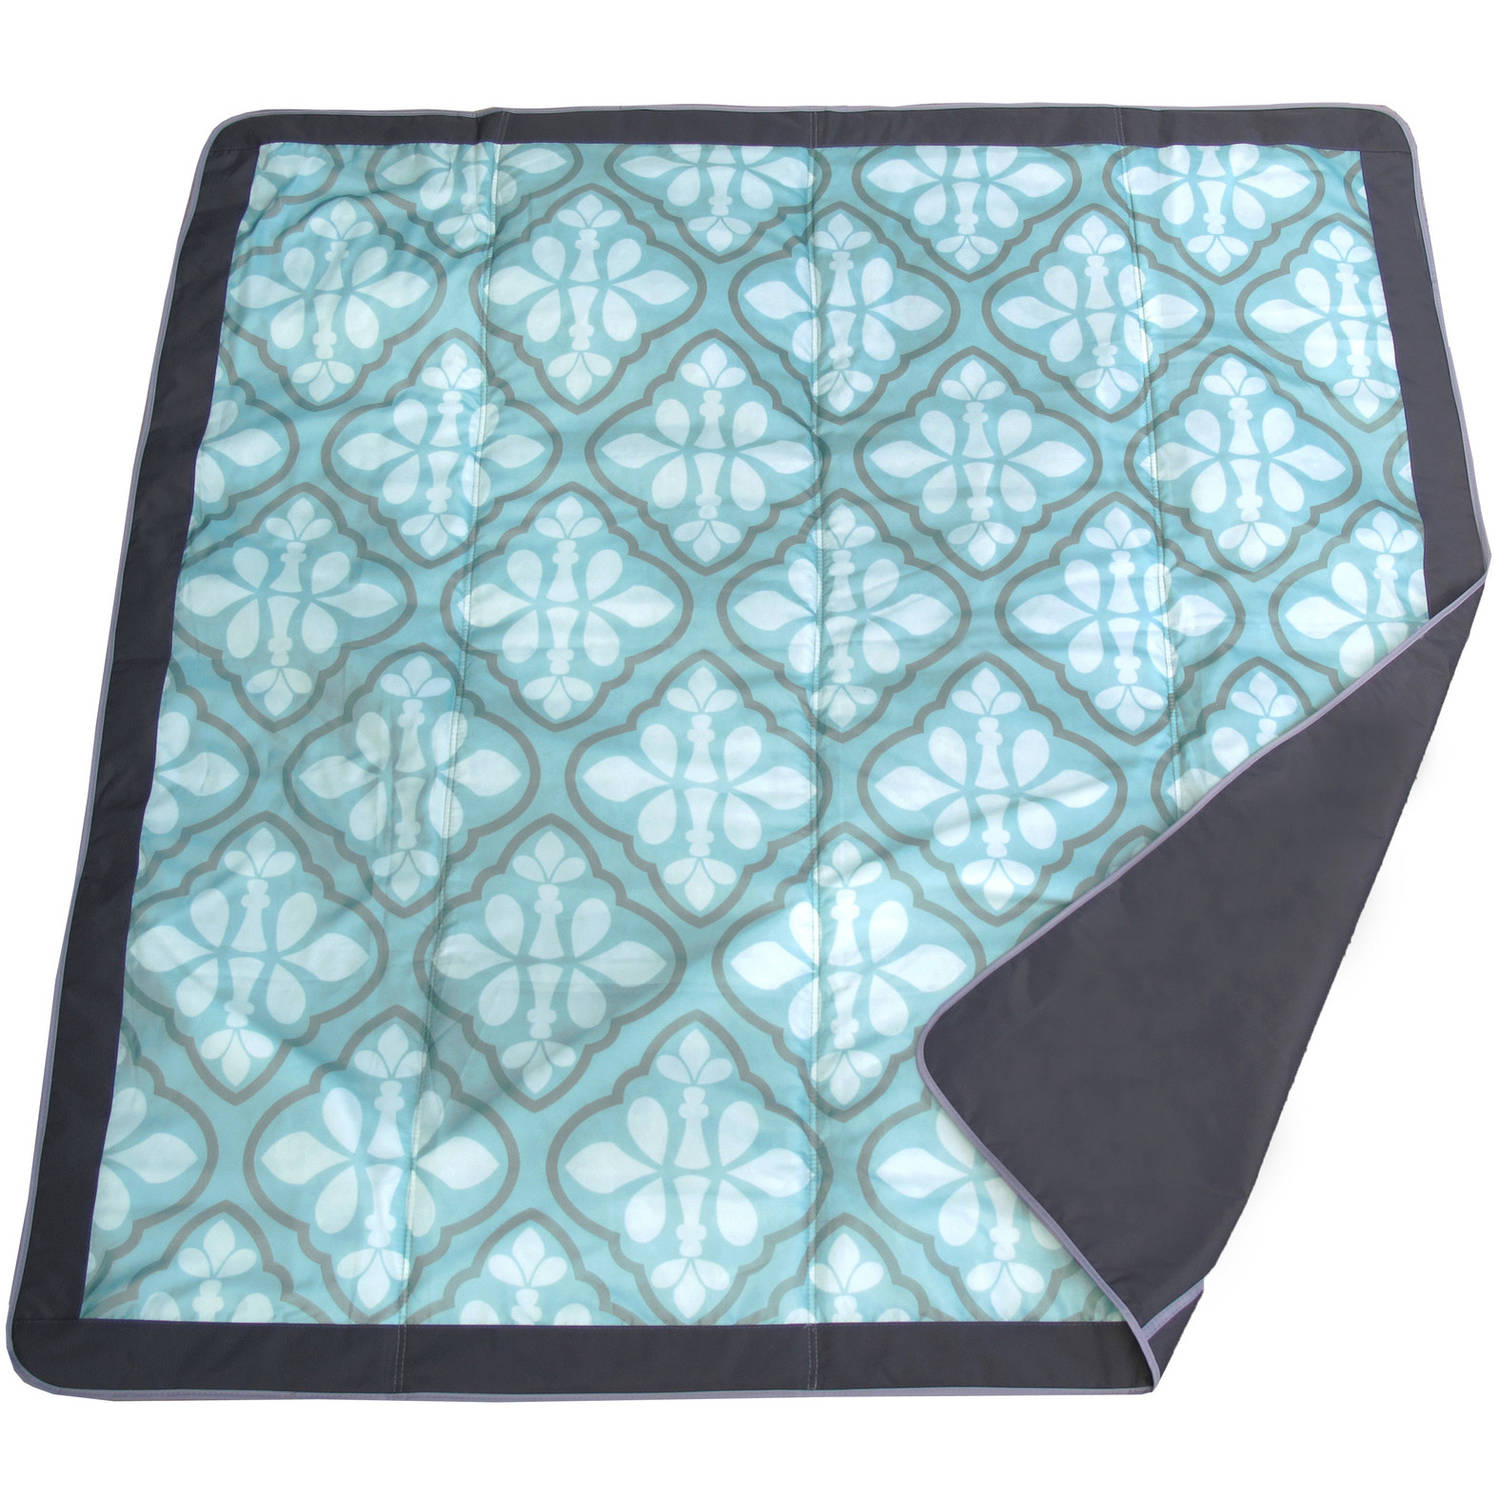 JJ Cole 5' x 5' Outdoor Blanket, Blue Iris